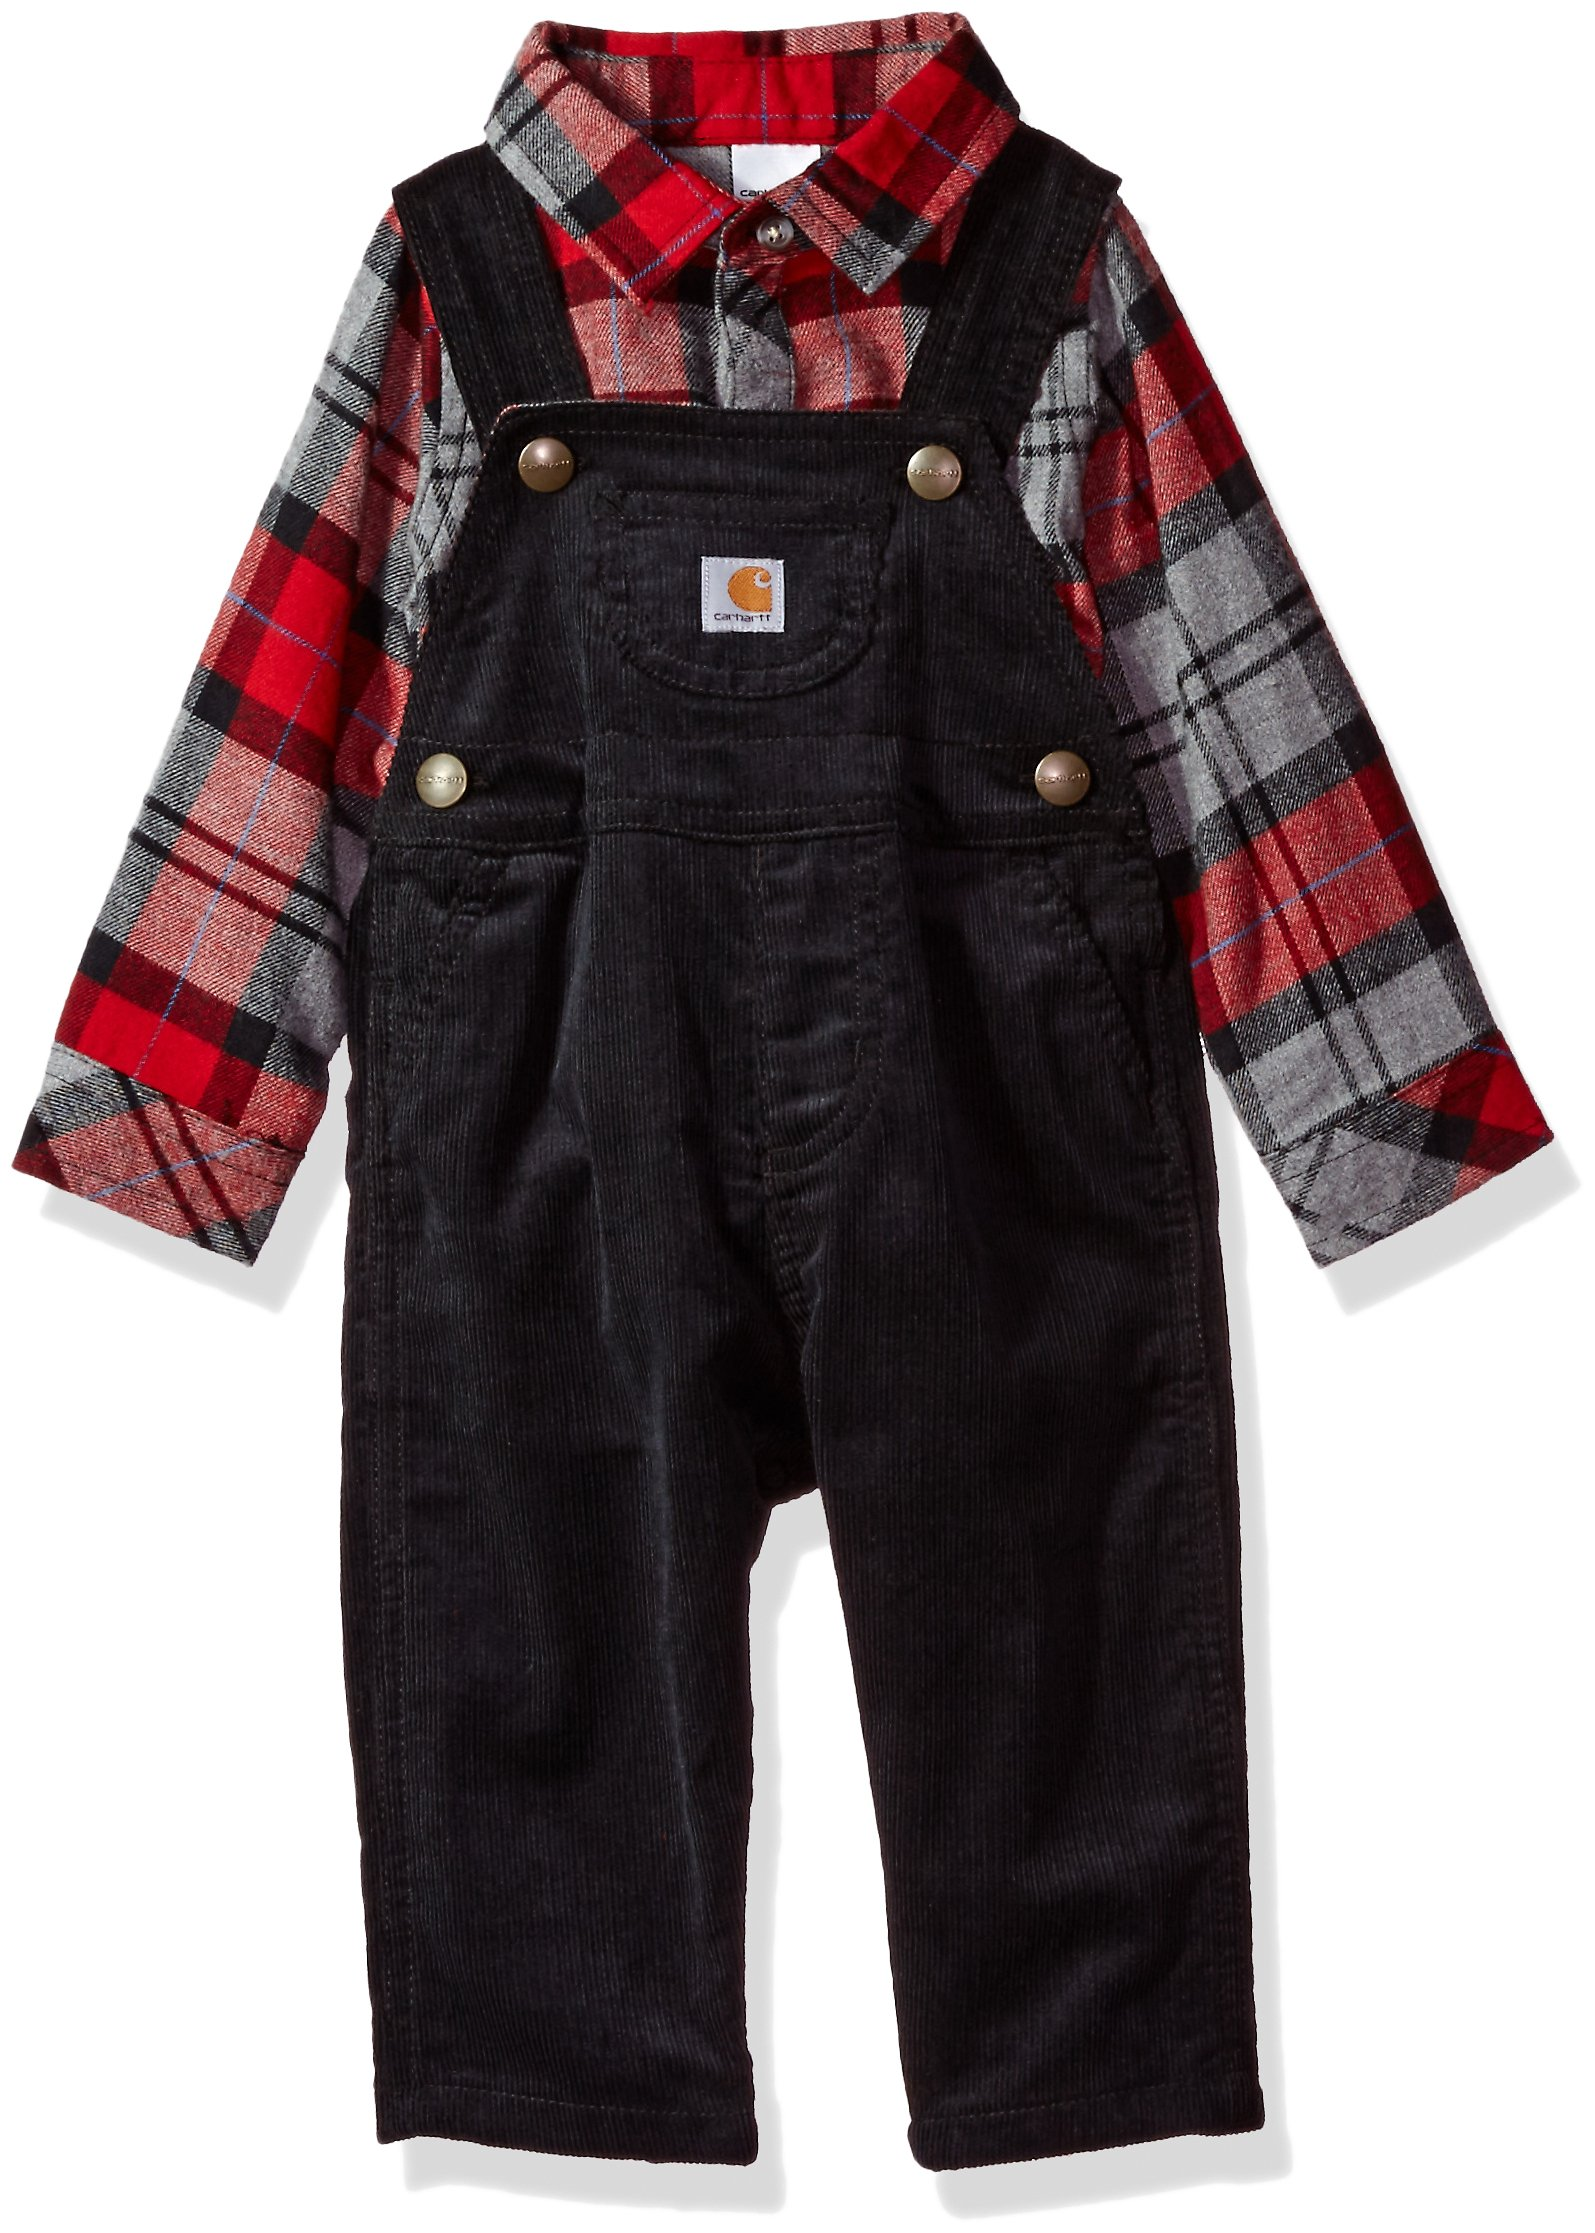 6da3960ef Carhartt Baby Boys' Little Sets, Caviar Black/Red, 24M - CG8672 ...